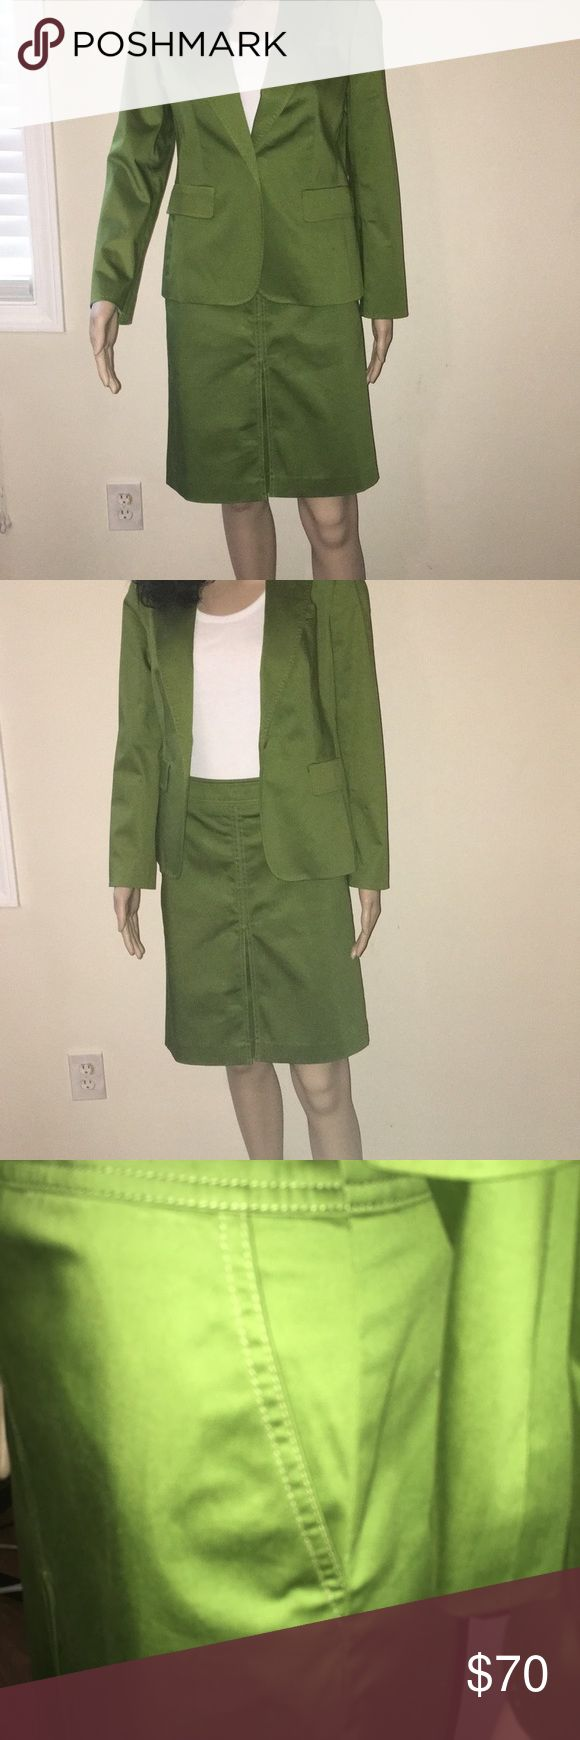 Talbots's two piece set Featured here is a green two piece skirt with matching blazer. The skirt has two side pockets. This is a business casual set . Stand out for the fall paired with your favorite boots. Talbots Jackets & Coats Blazers